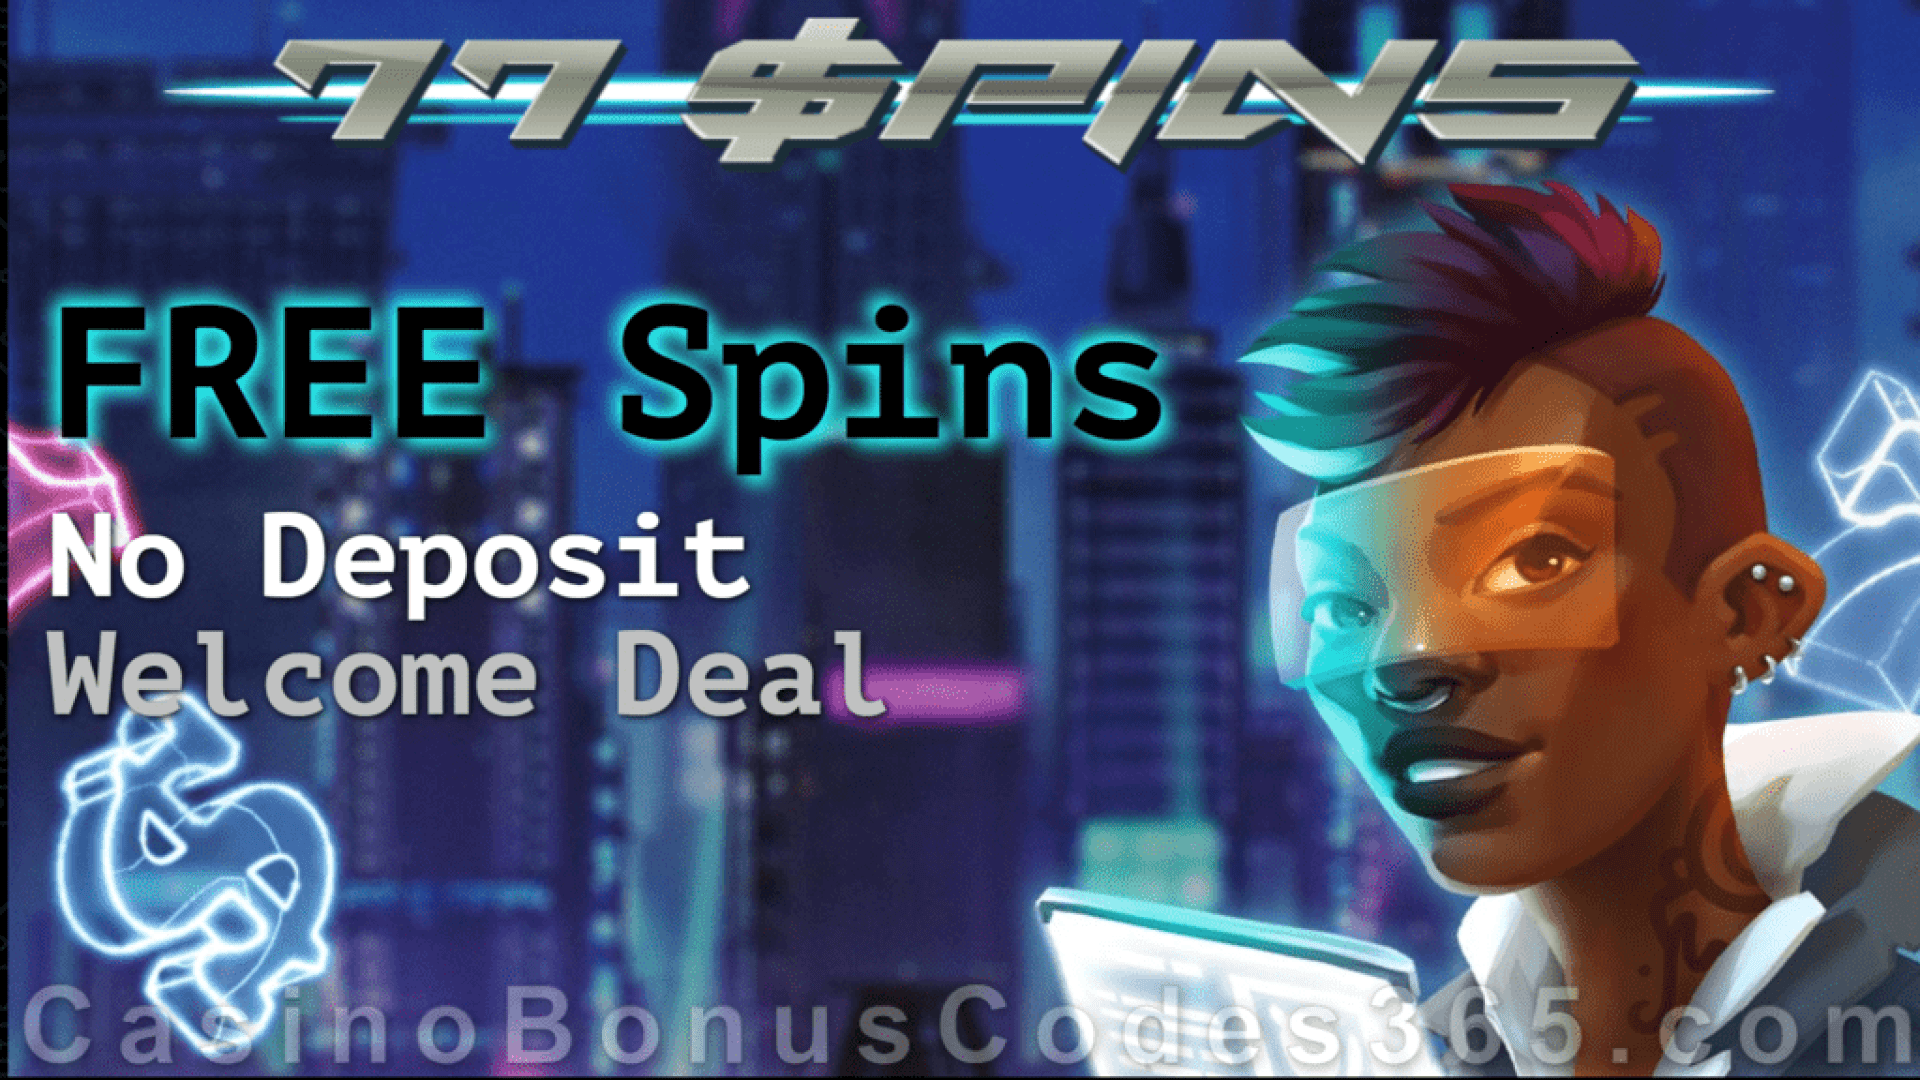 77Spins Monthly No Deposit FREE Spins Offer